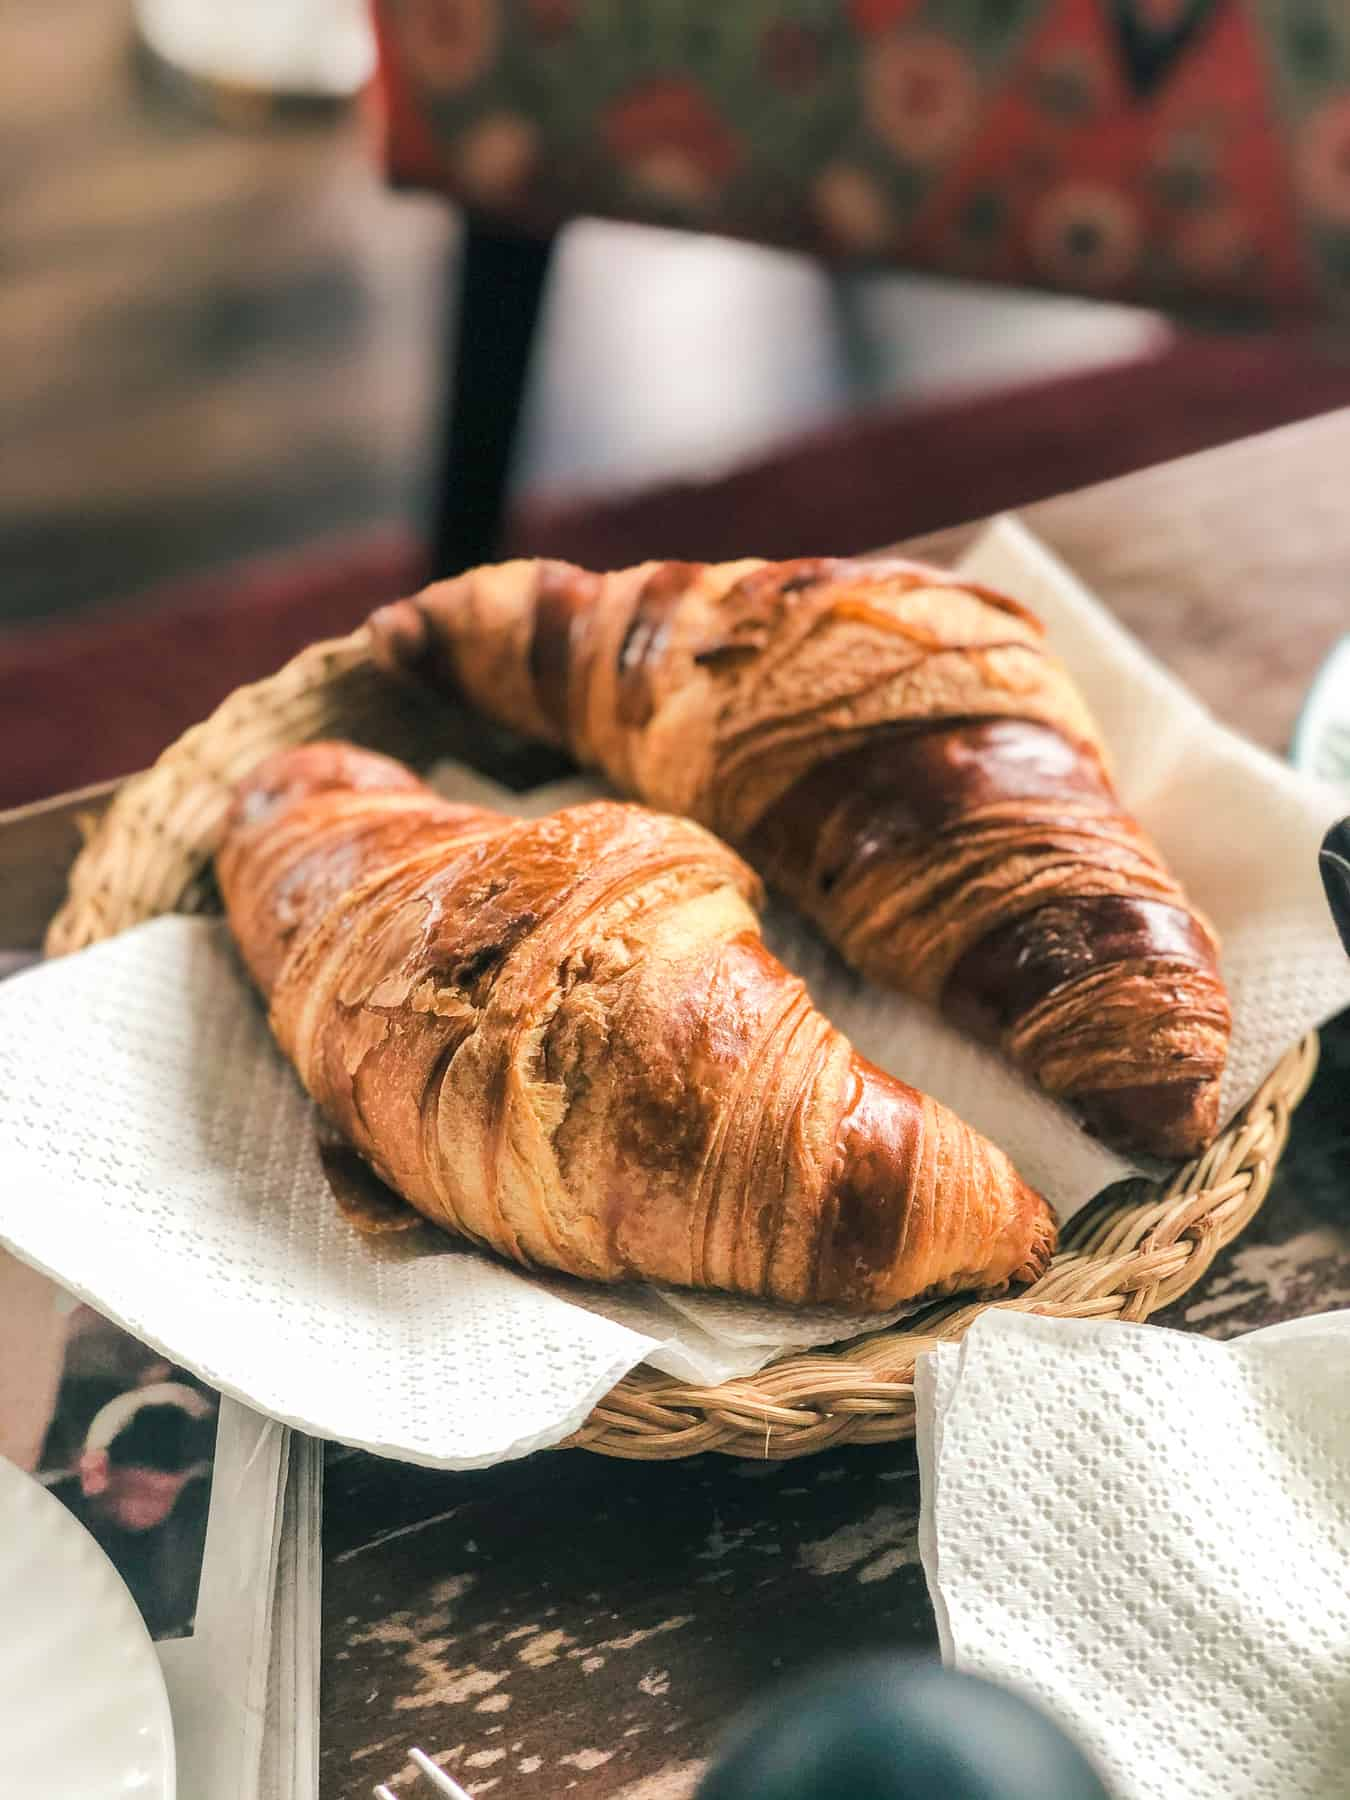 Two croissants sit on a white napkin in a woven basket.